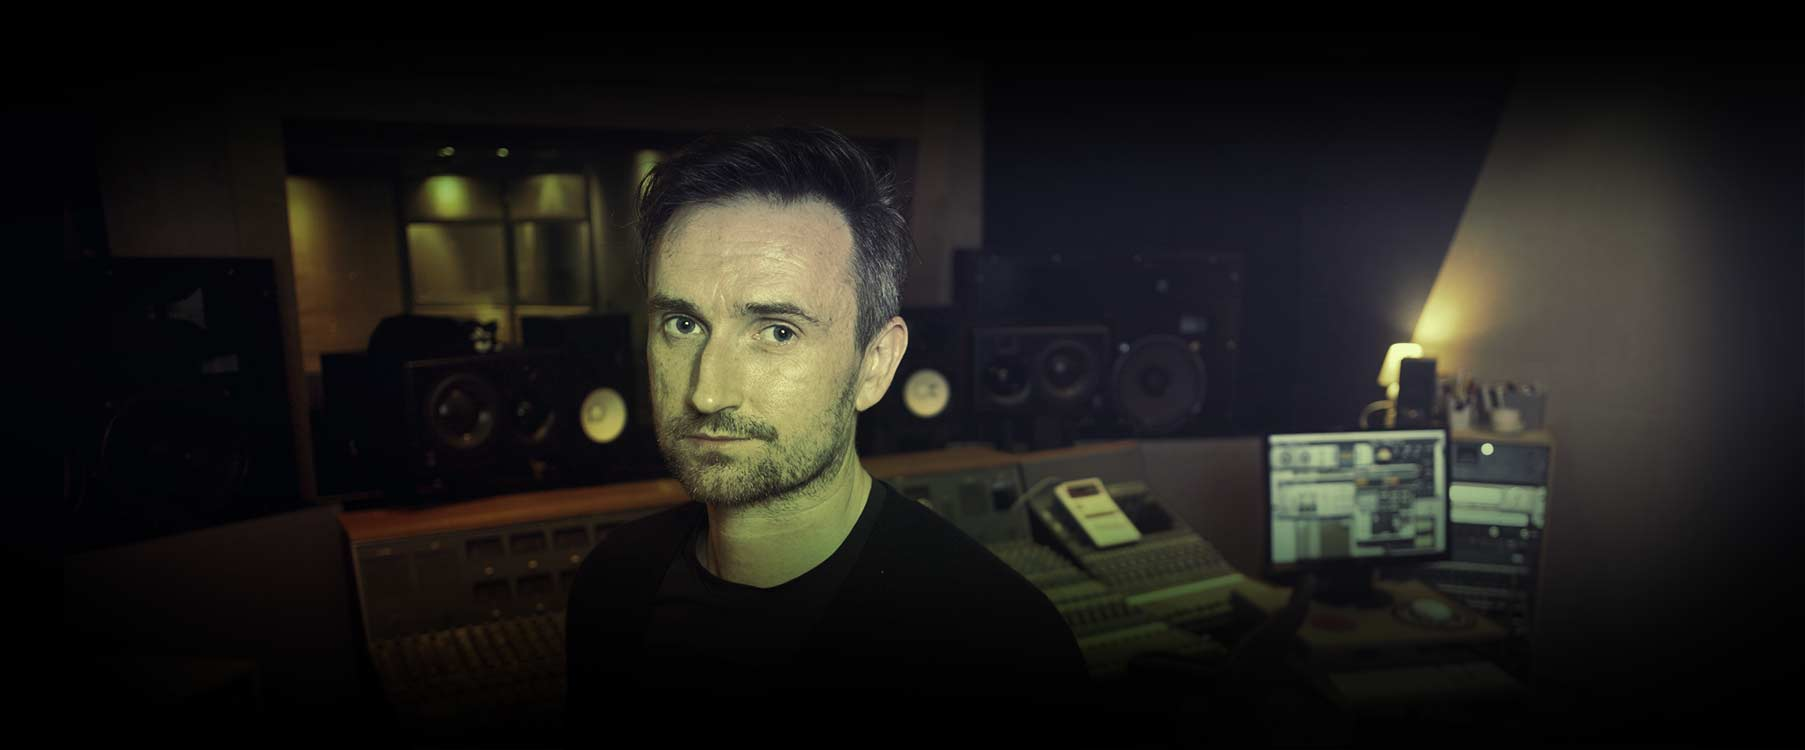 The Cranberries' Noel Hogan's Production Renaissance with UA Hardware and UAD Plug-Ins